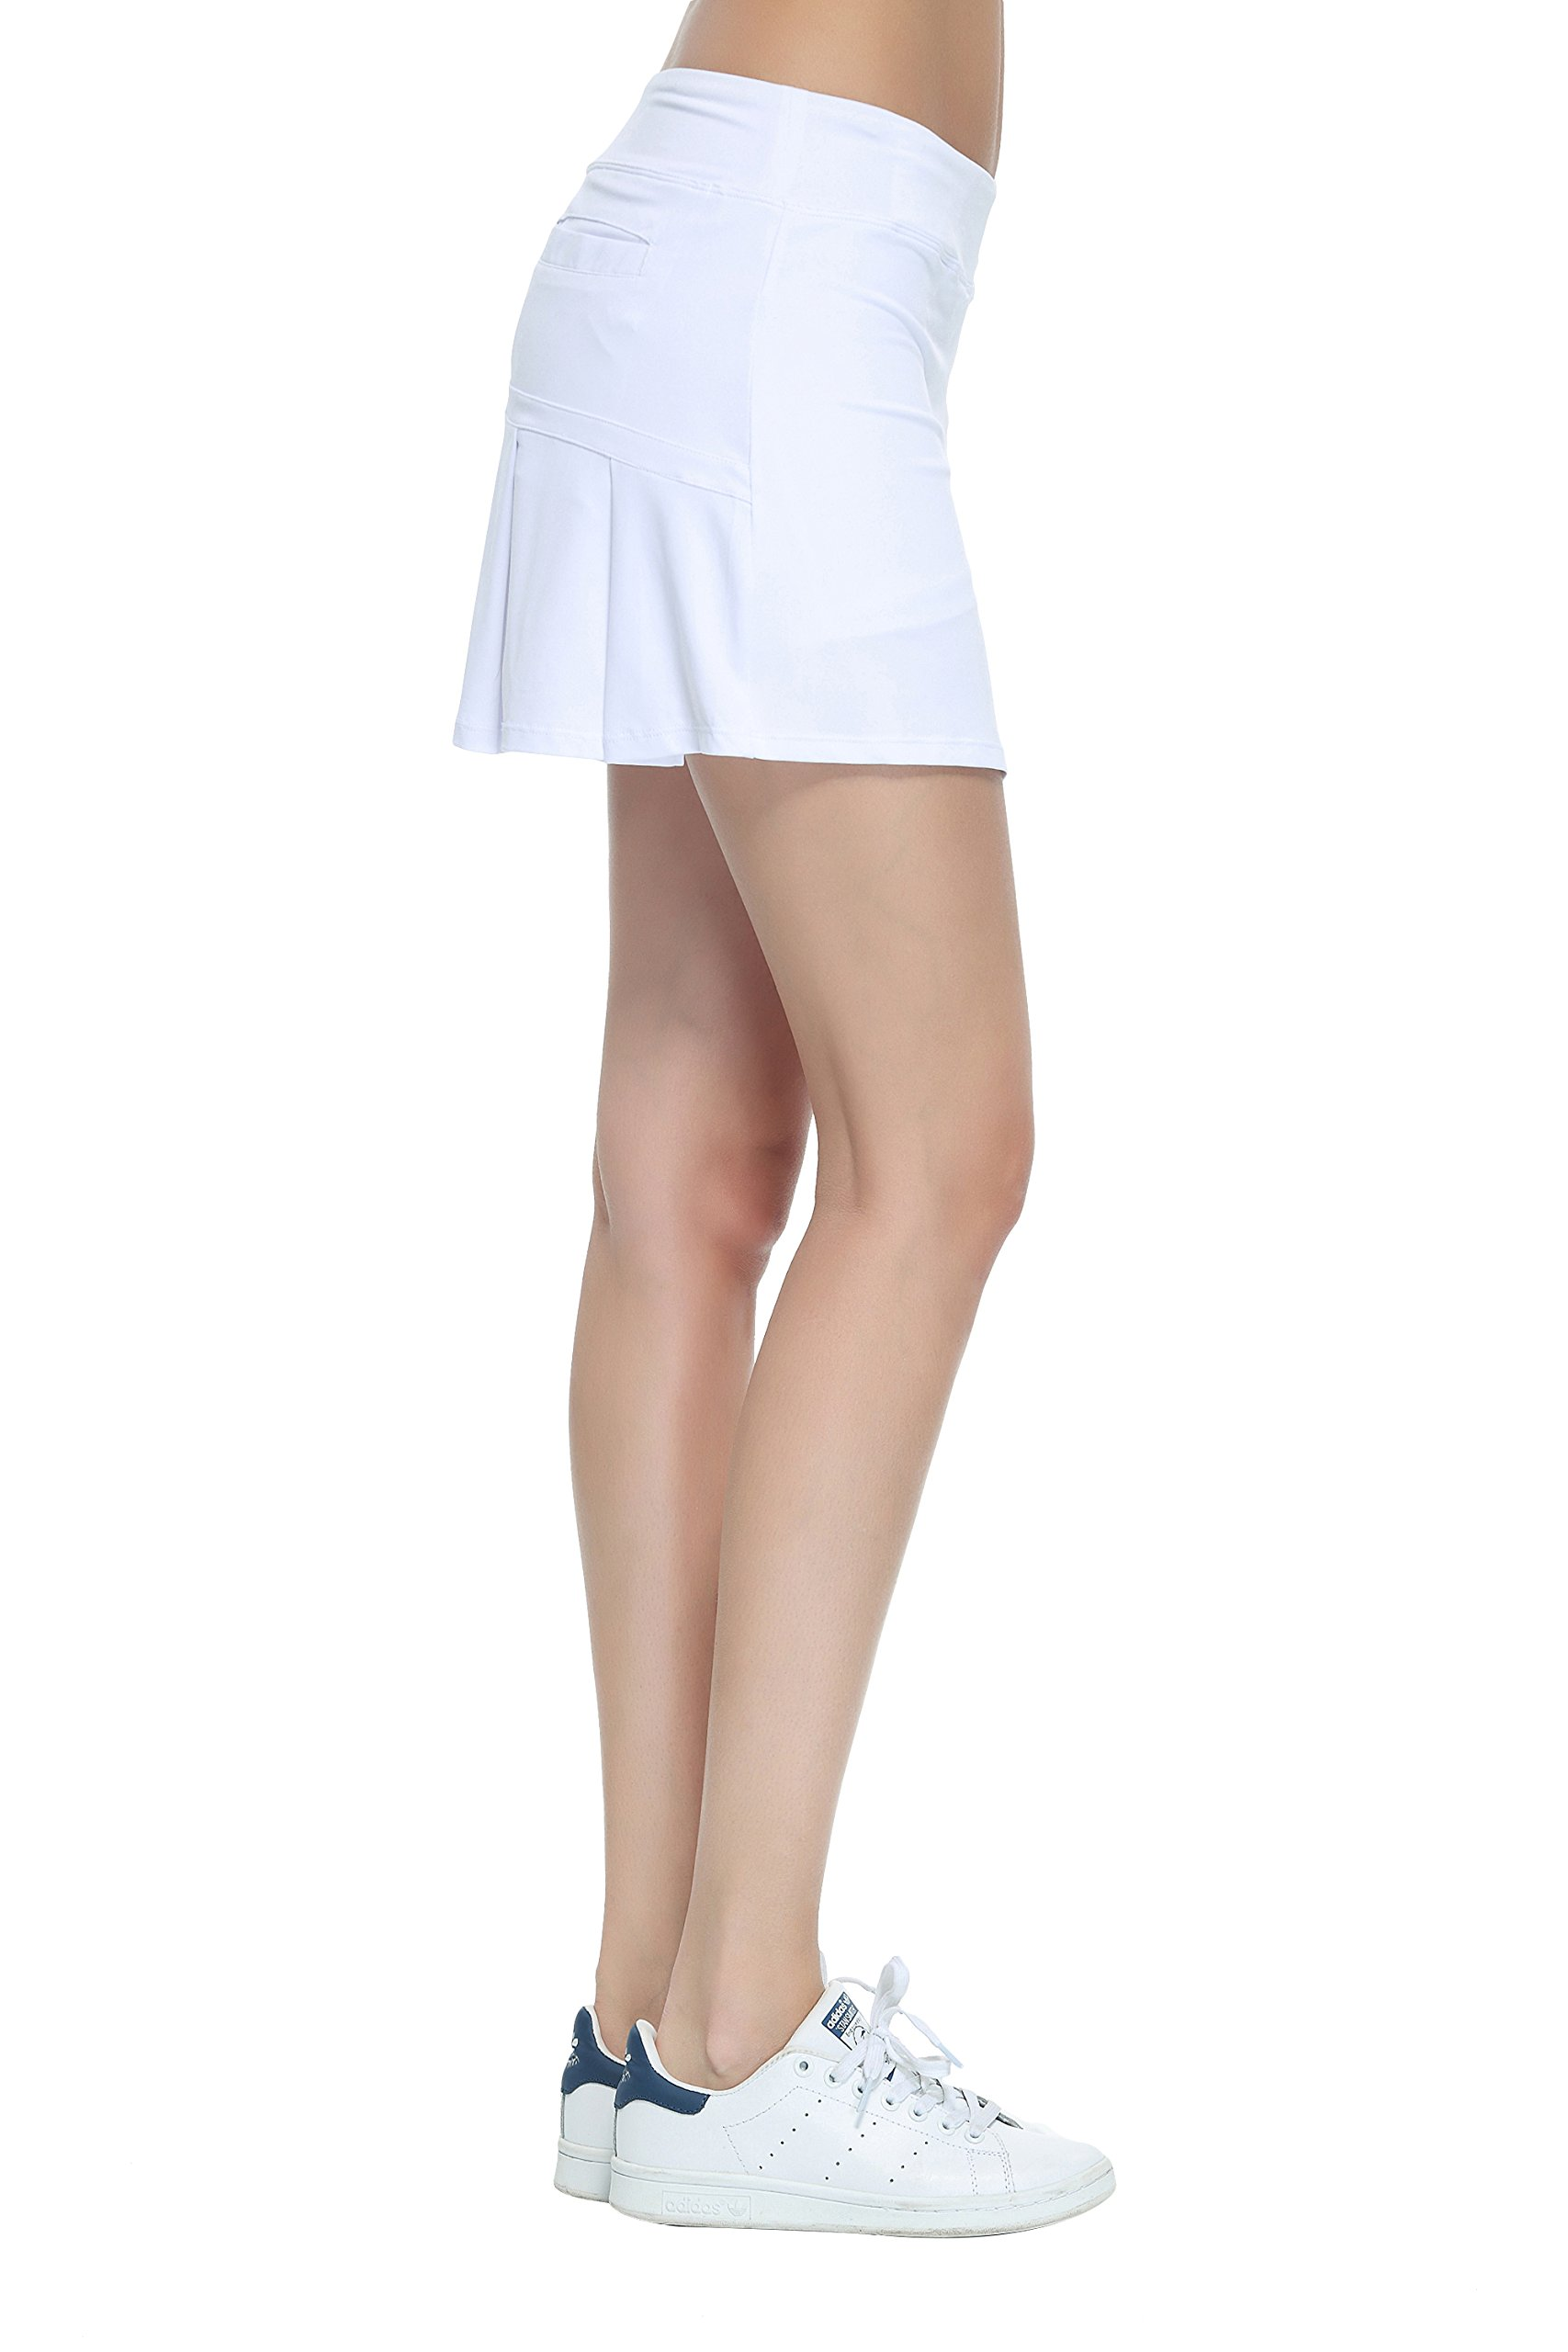 HonourTraining Women's Workout Active Skorts Sports Tennis Golf Skirt With Built-In Shorts size m (White)